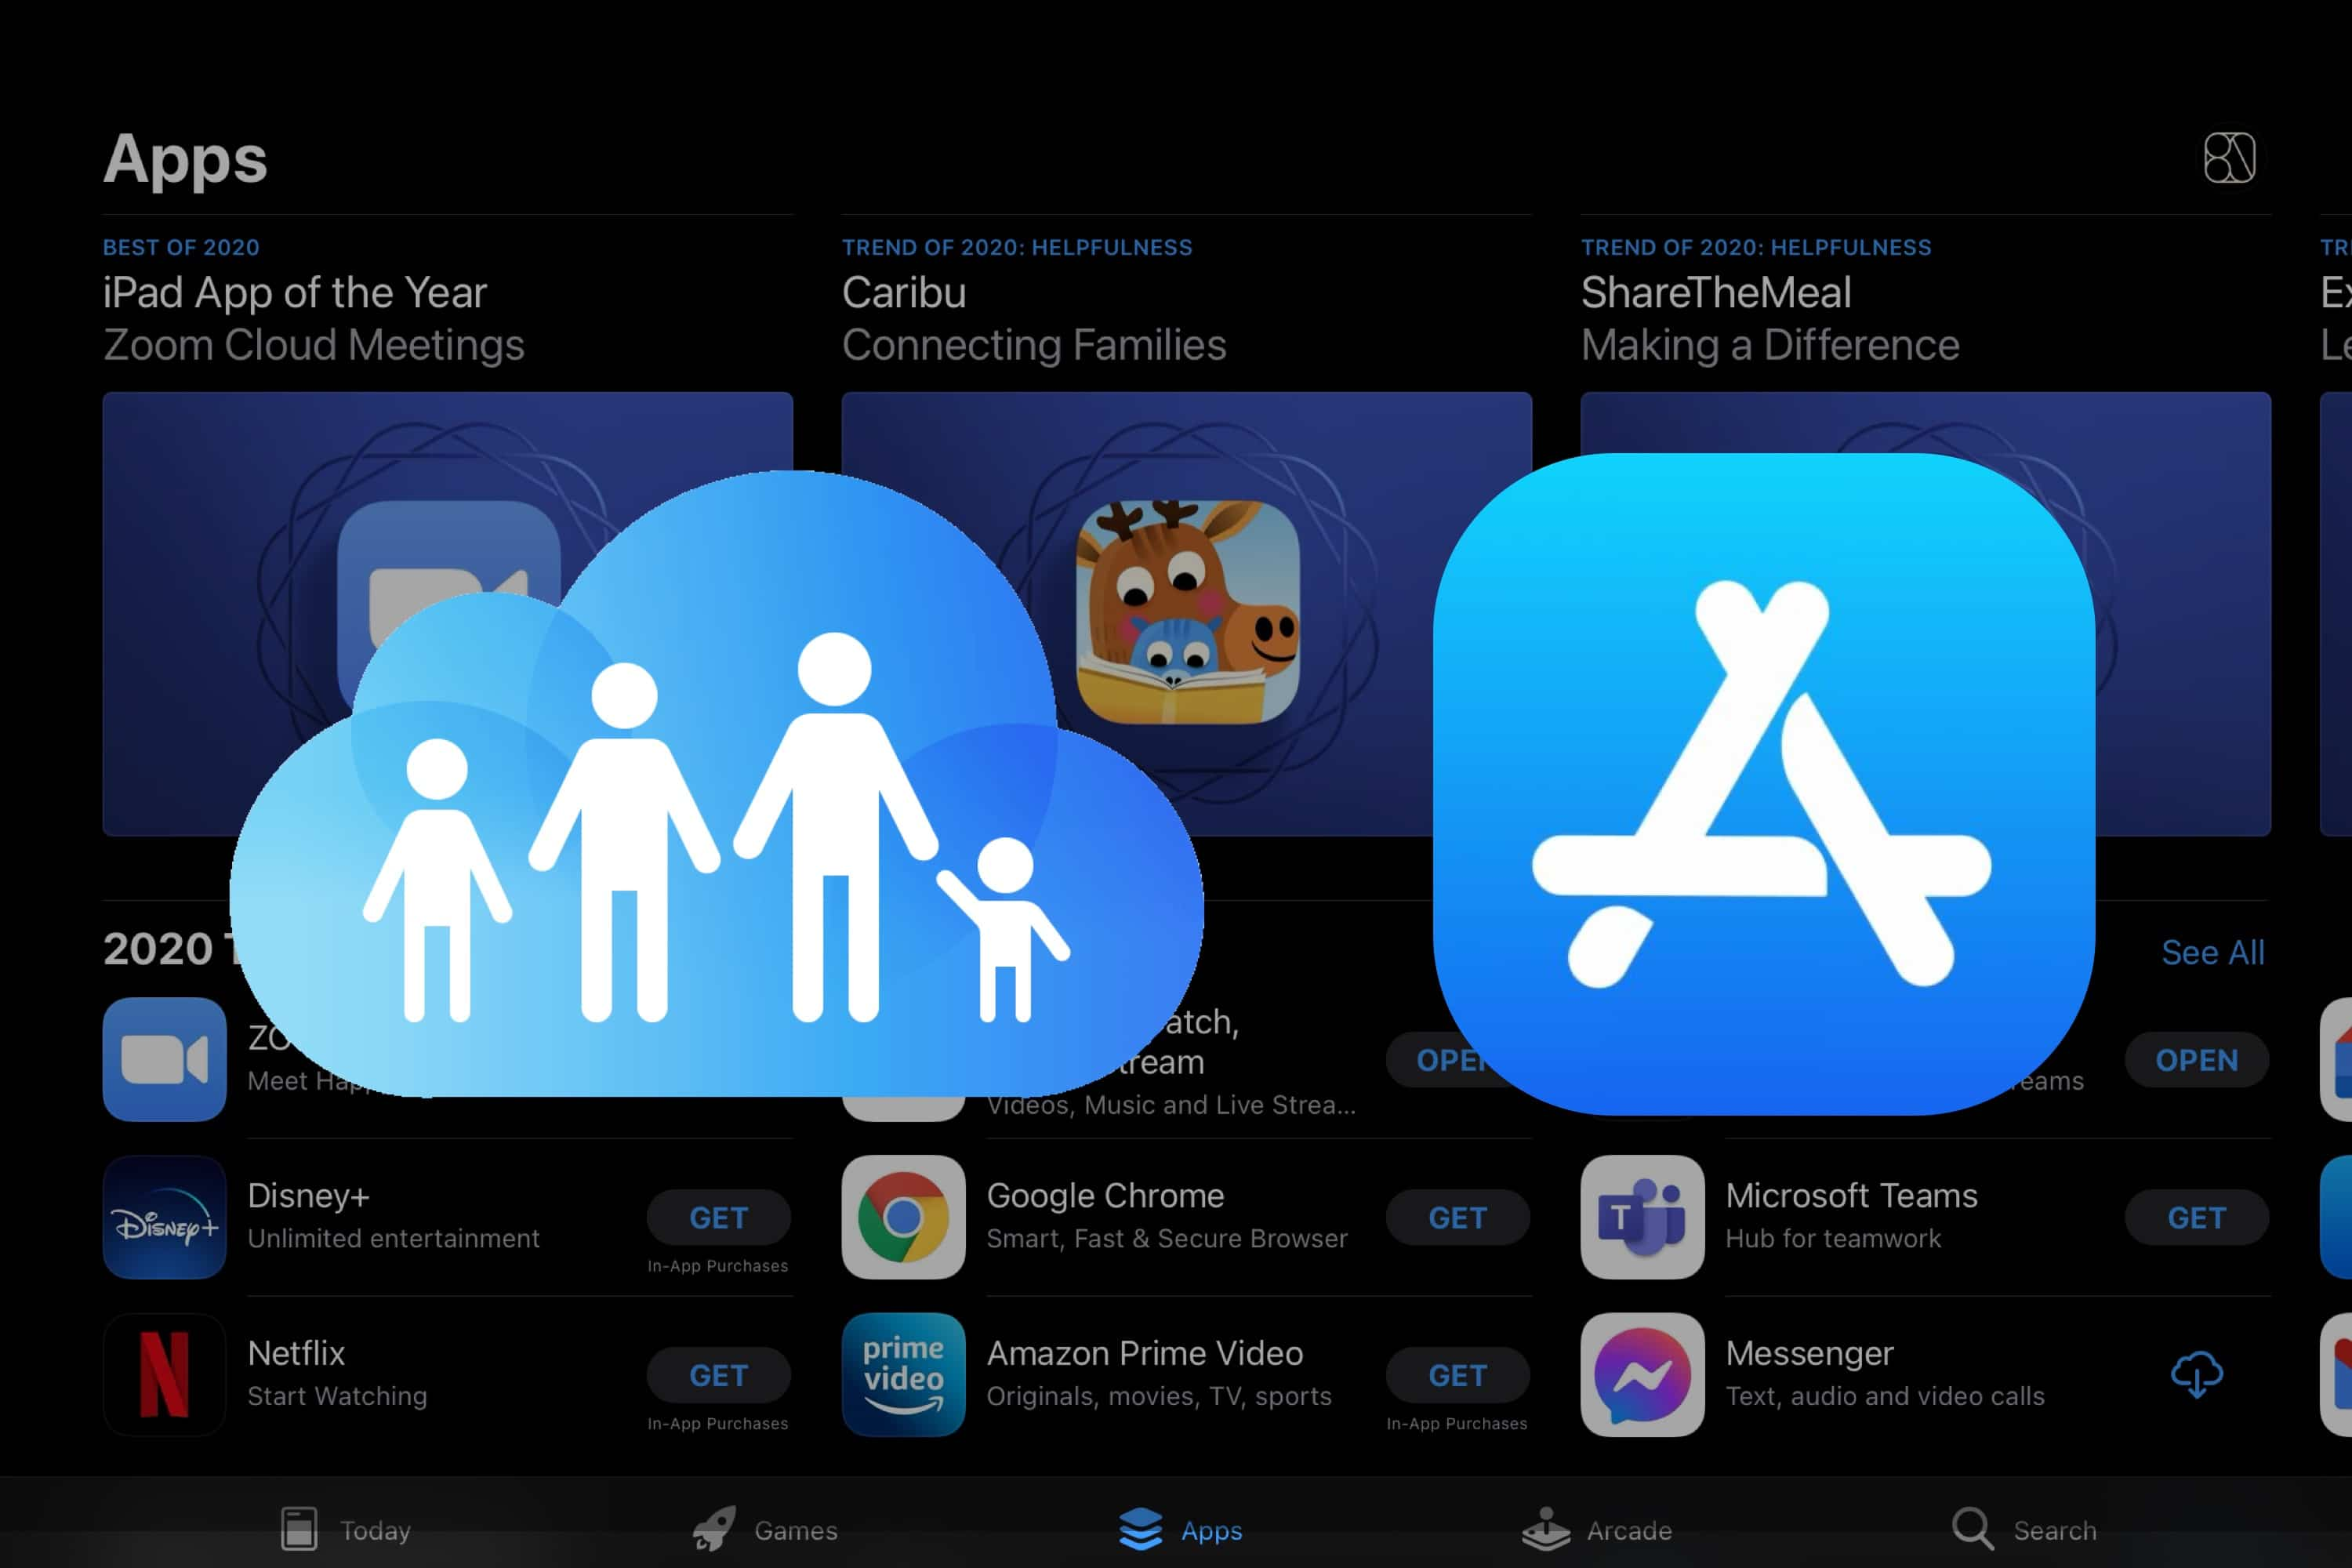 share-app-store-subscriptions-through-family-sharing-20201204-101